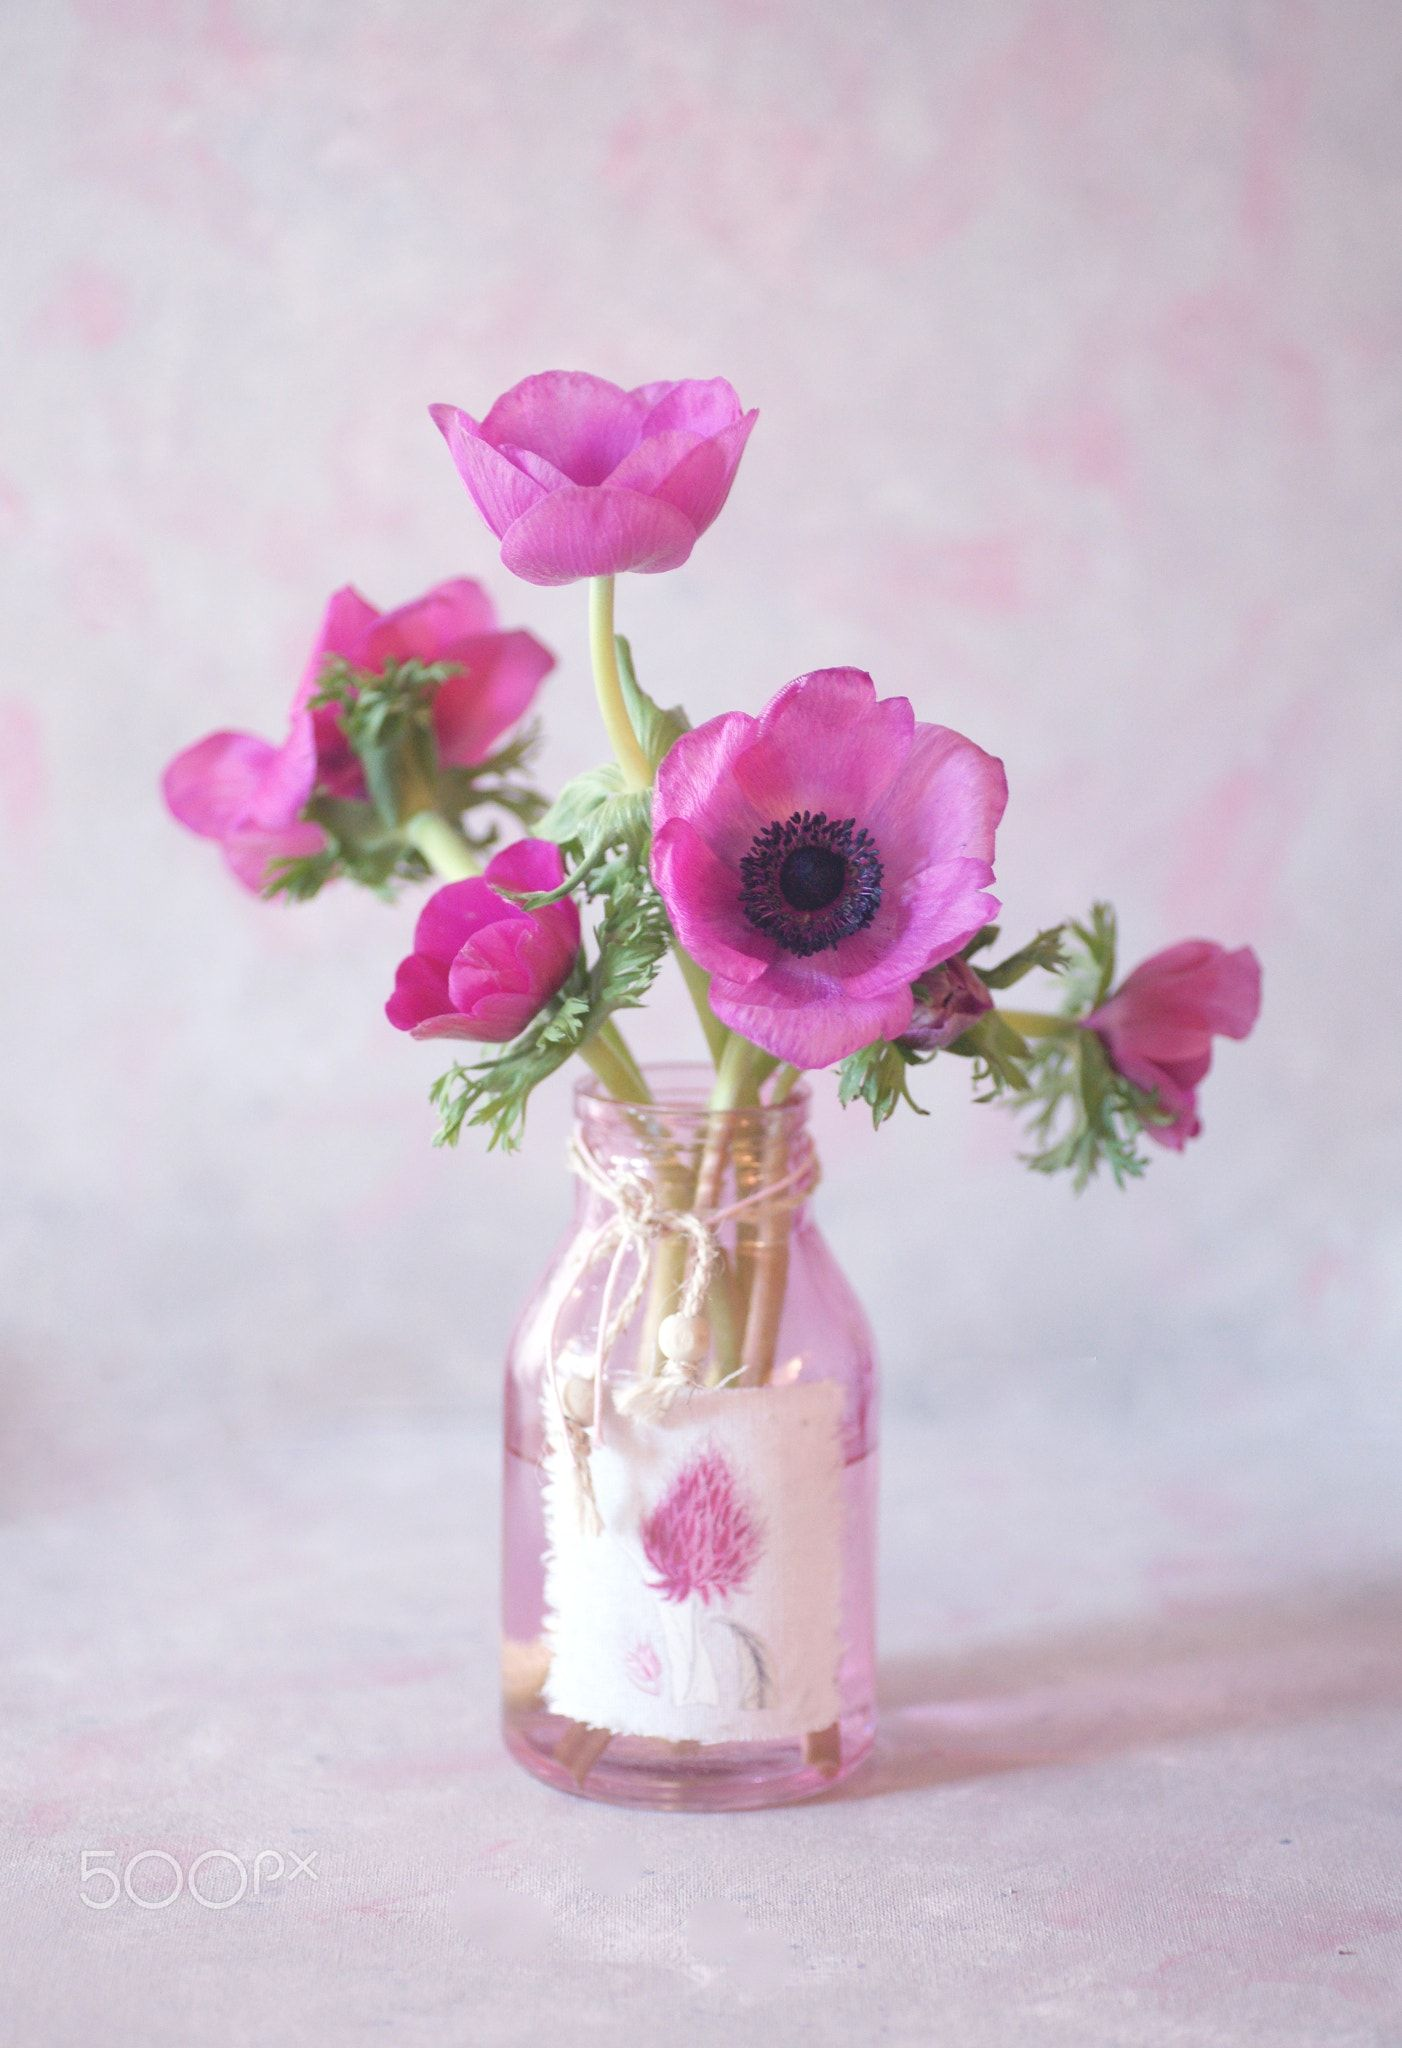 Sony Dsc Pink Anemones In A Glass Vase Flower Creation Flowers Photography Glass Vase